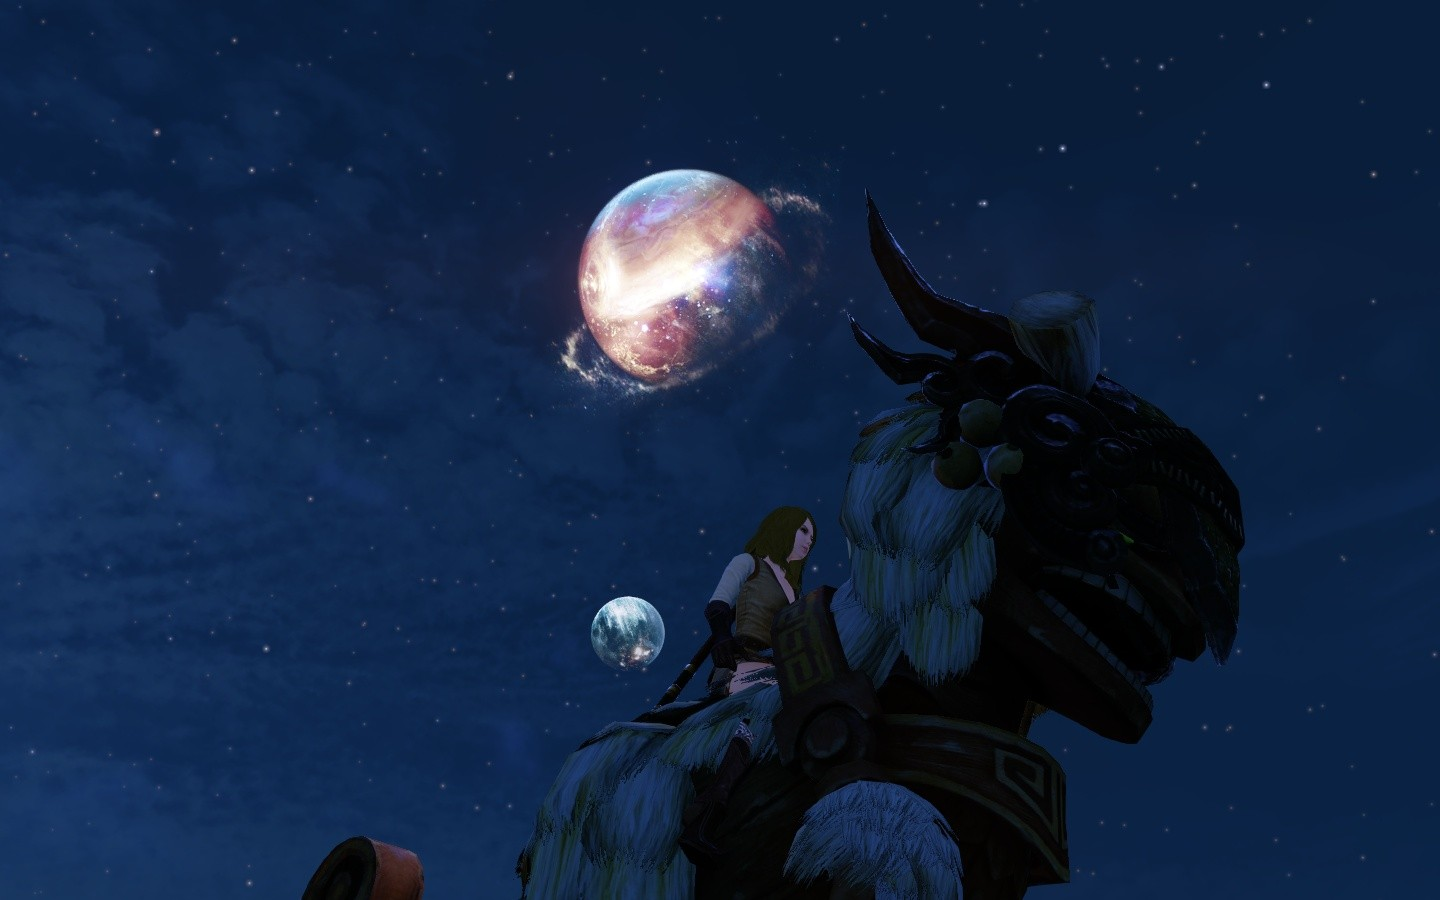 ArcheAge - Riding in the moonlight everybody..